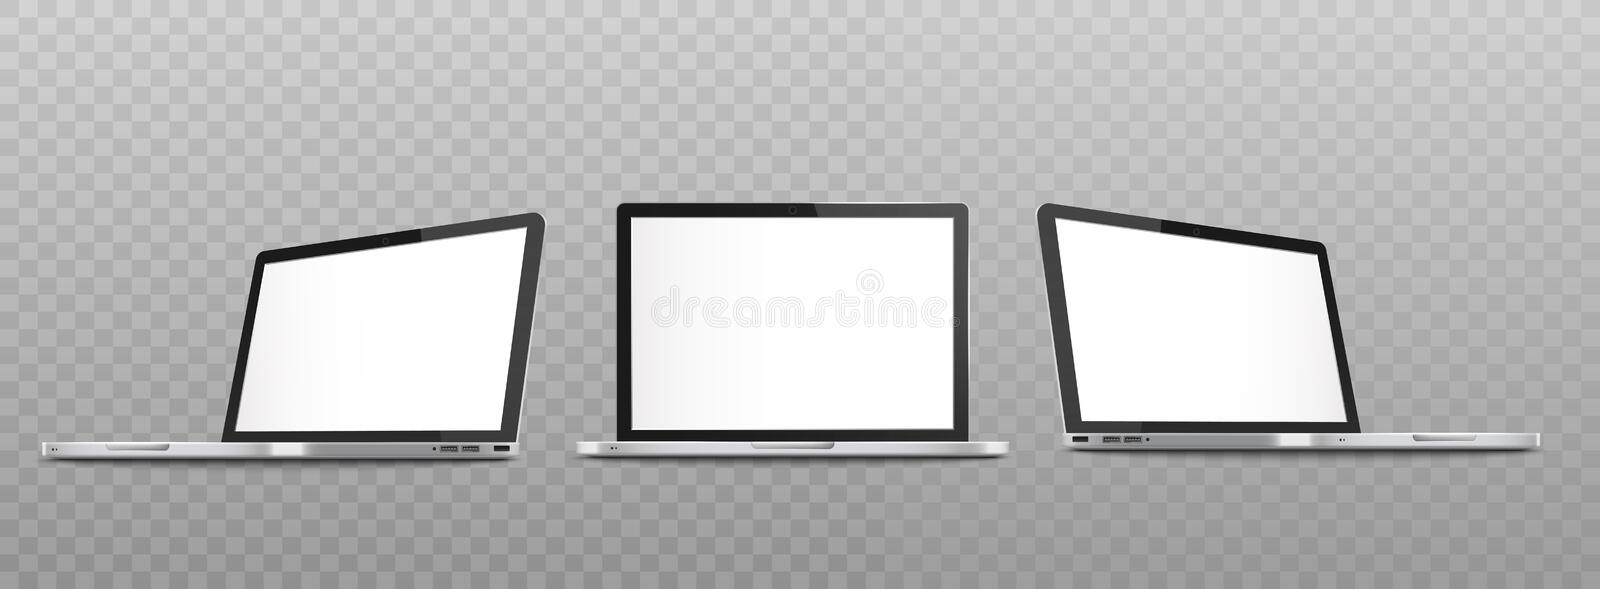 Mockup set of open laptop with blank screen in different views realistic style. Vector illustration isolated on transparent background. Templates of notebook stock illustration